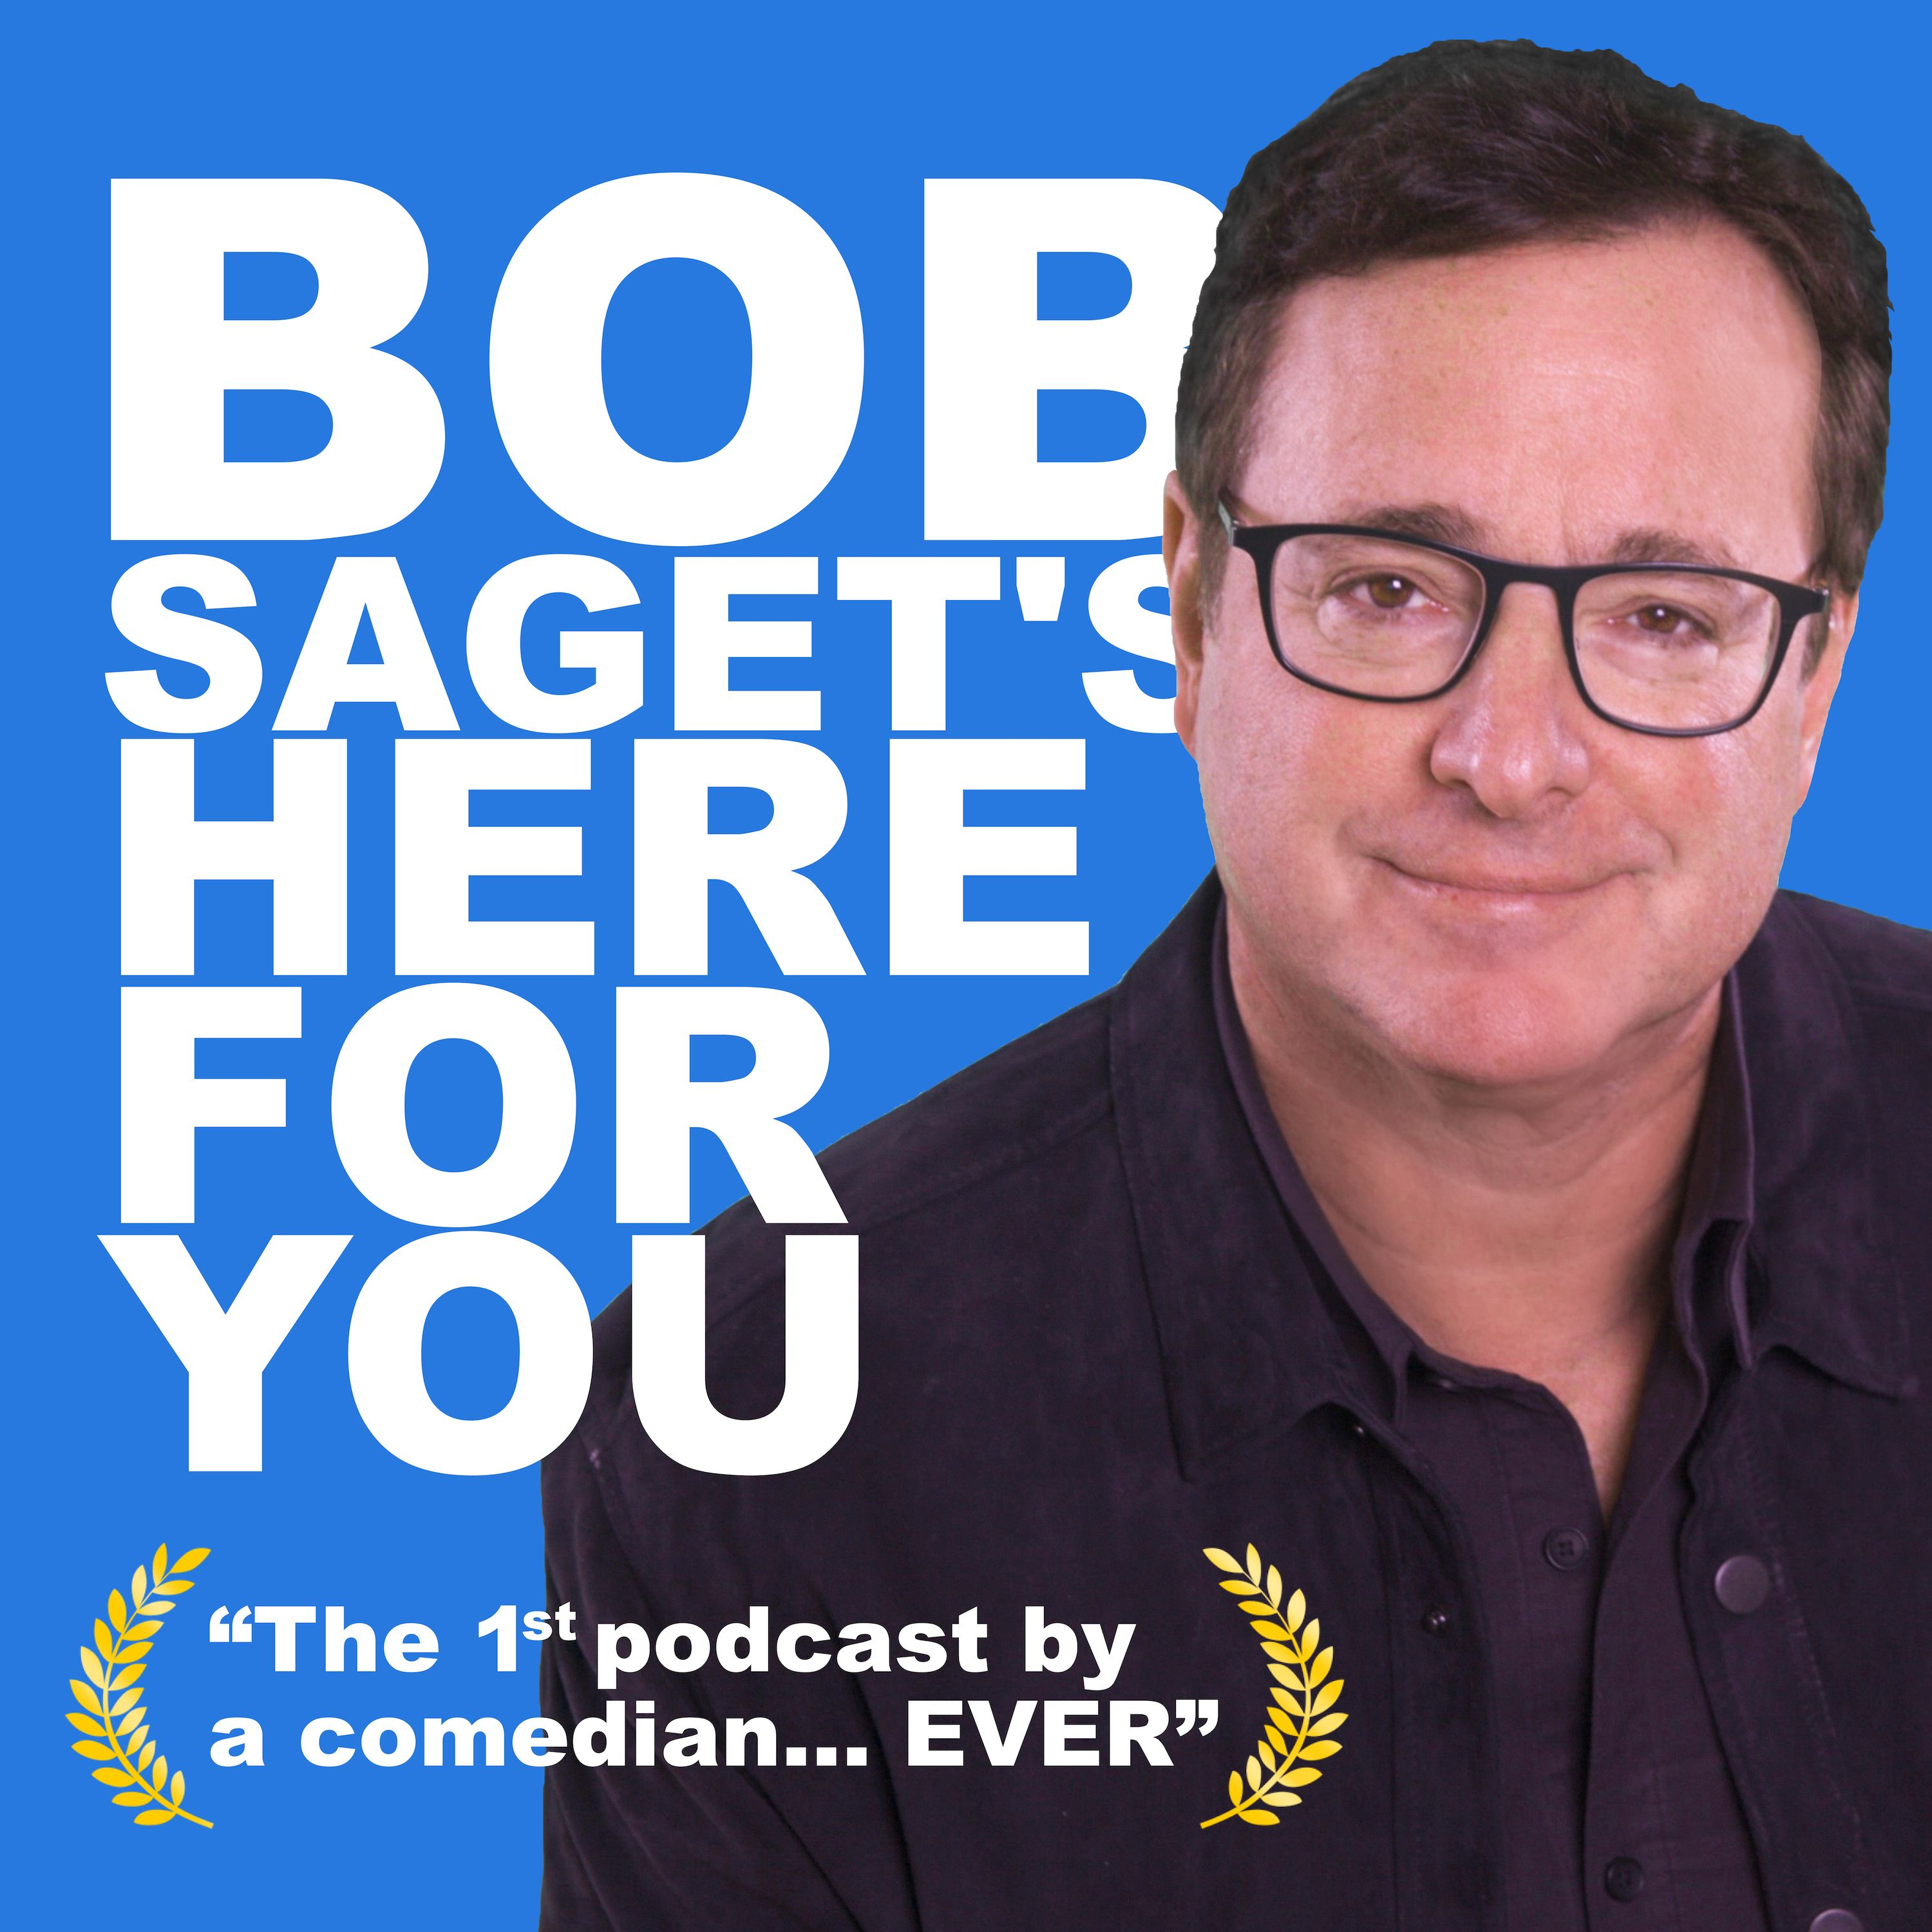 Introducing - Bob Saget's Here for You